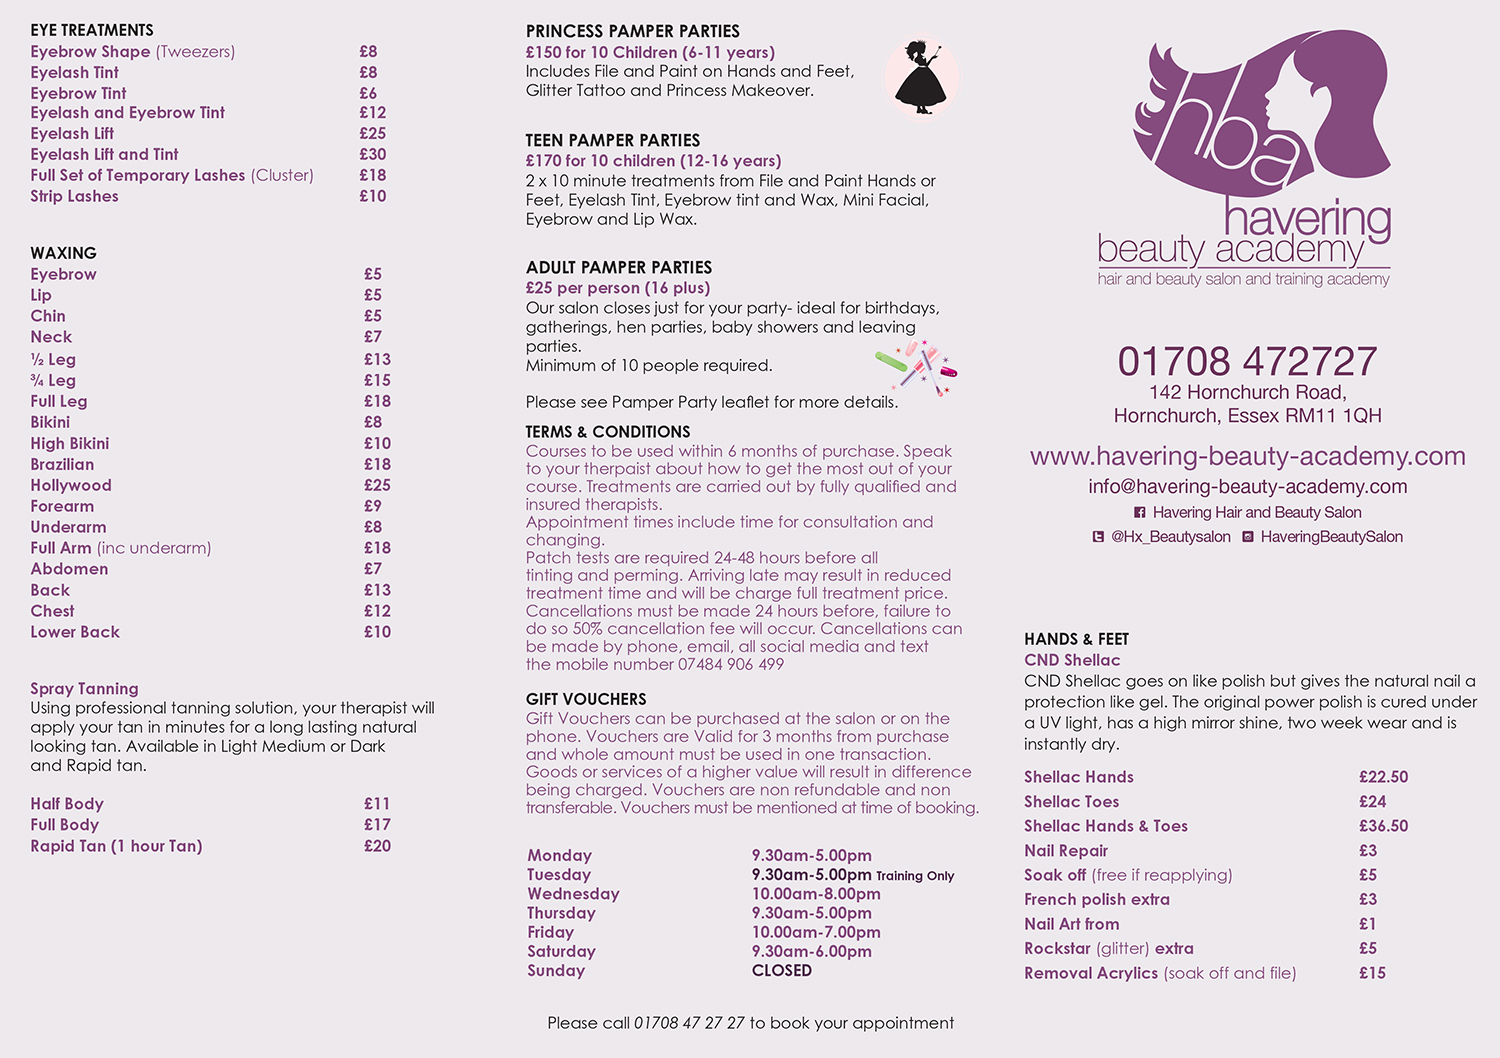 Finest Price List - Havering Beauty AcademyHavering Beauty Academy HI36